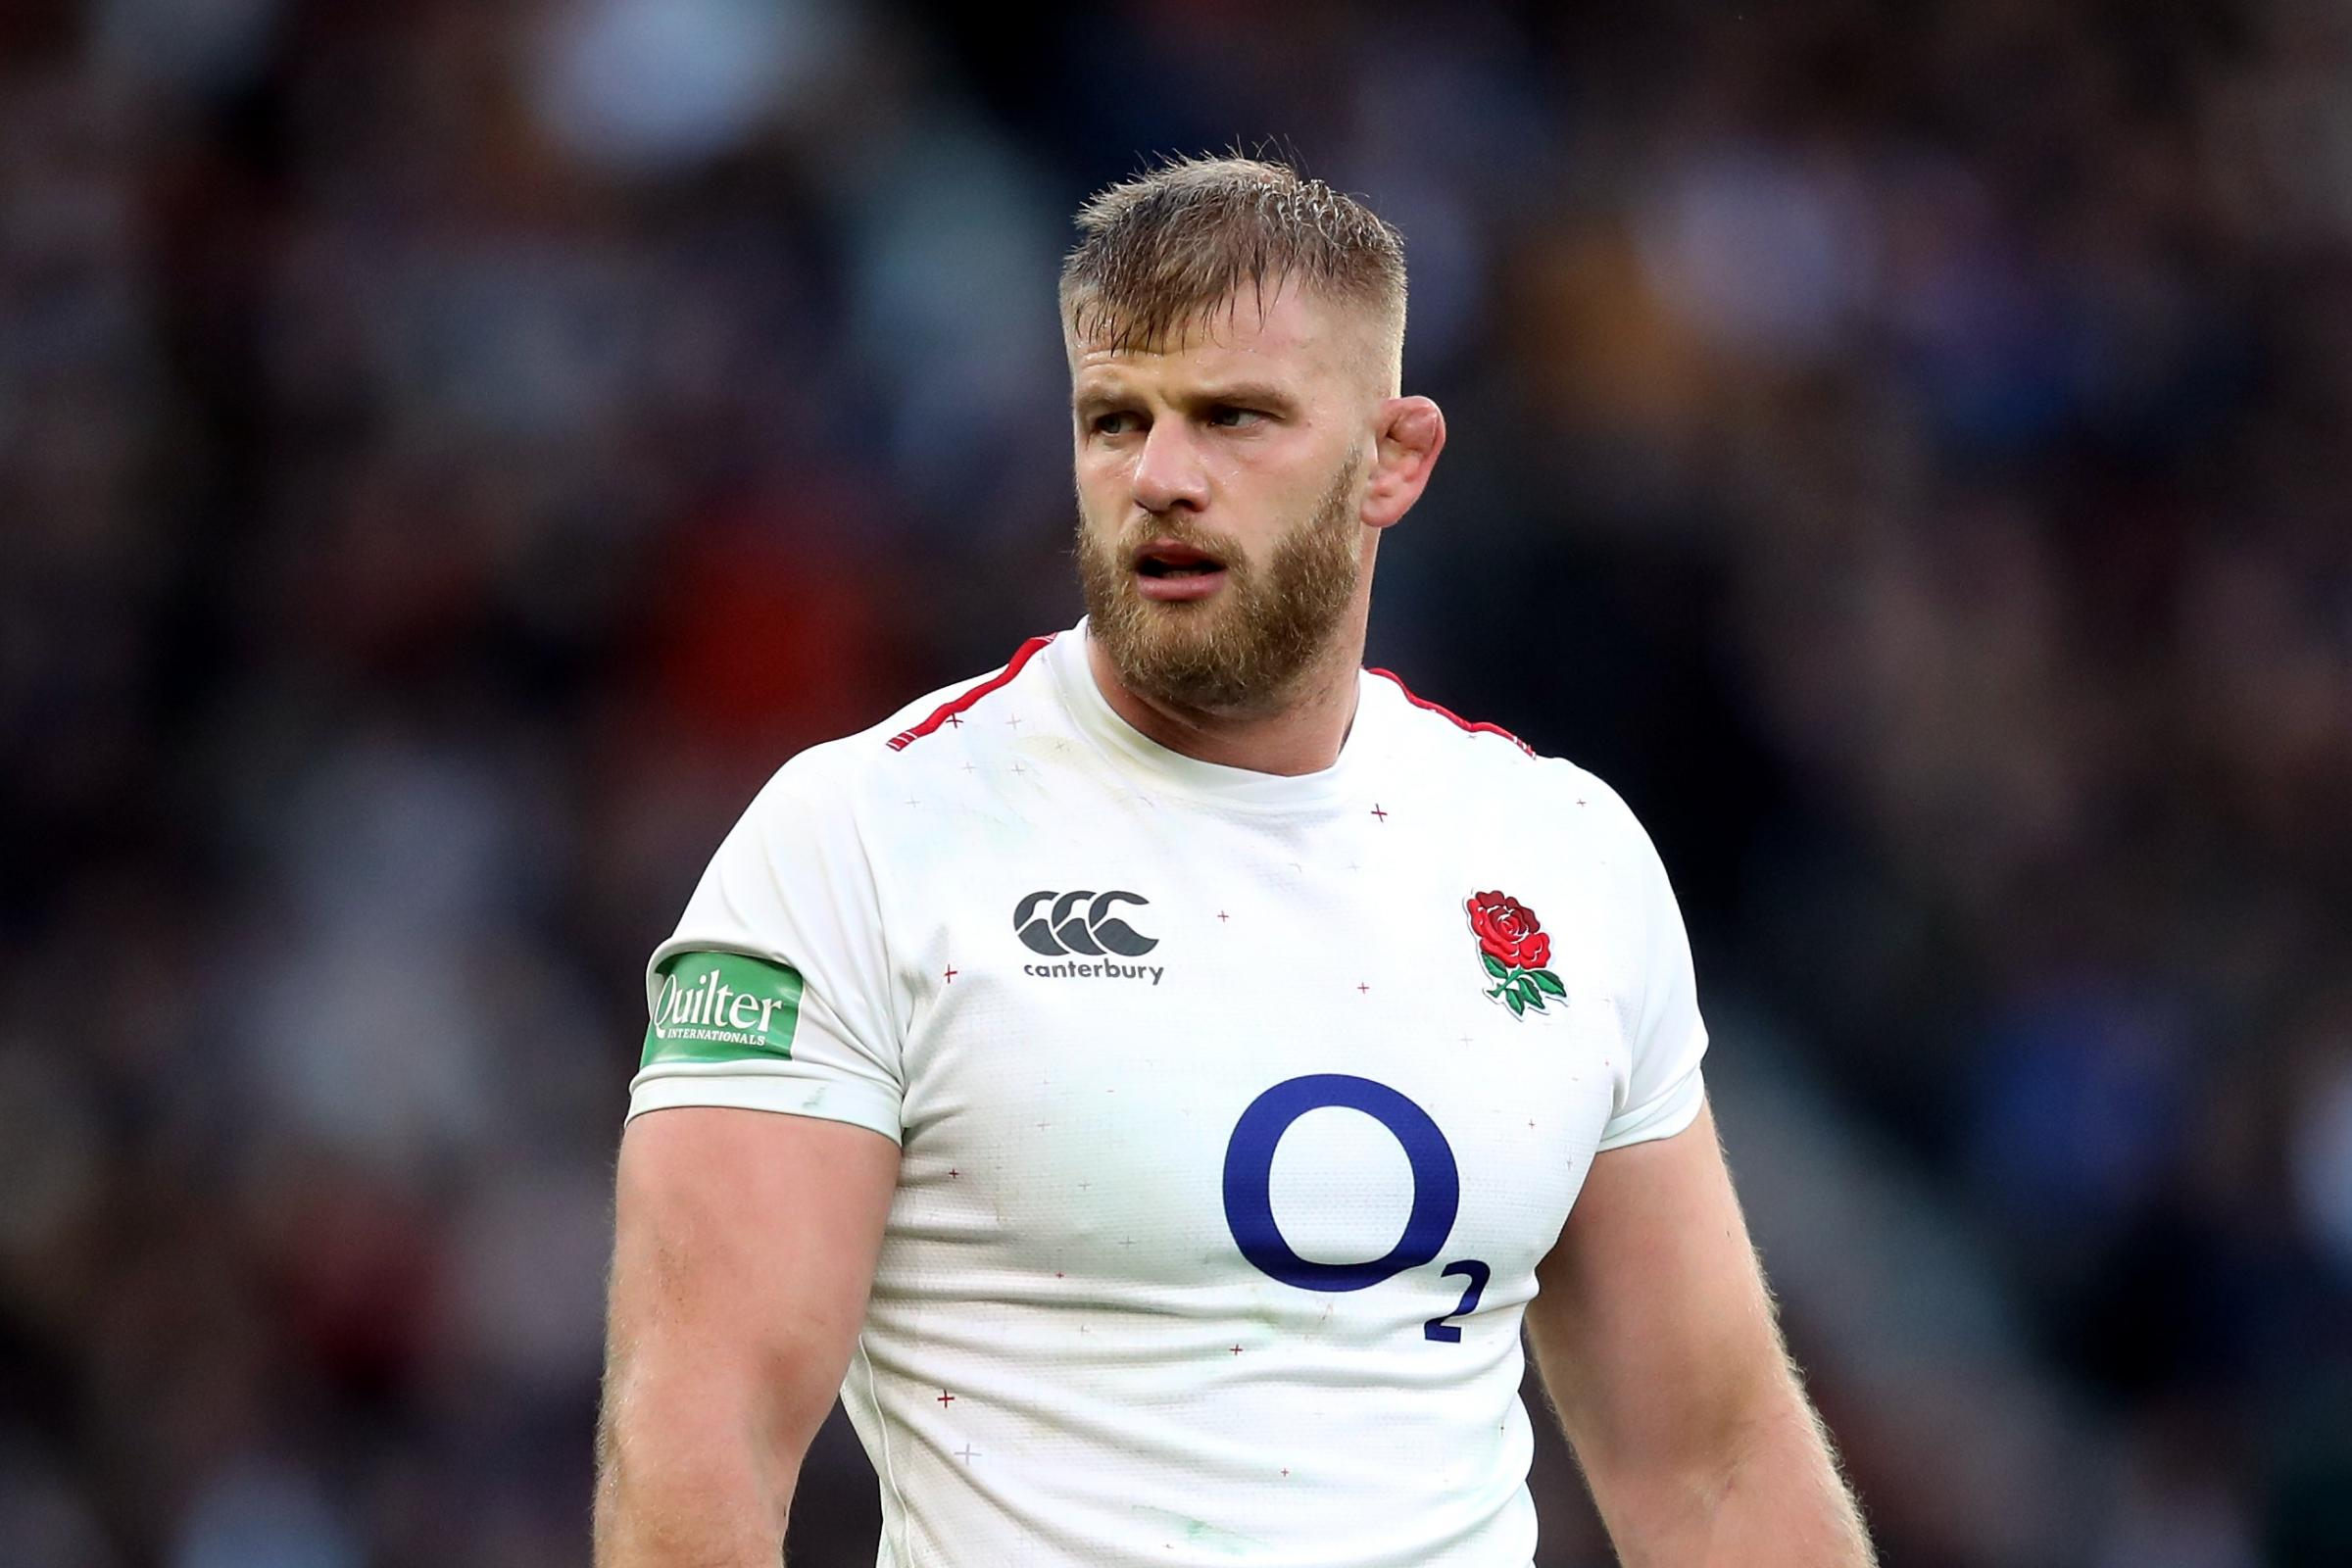 Injury rules George Kruis out of England's remaining autumn internationals